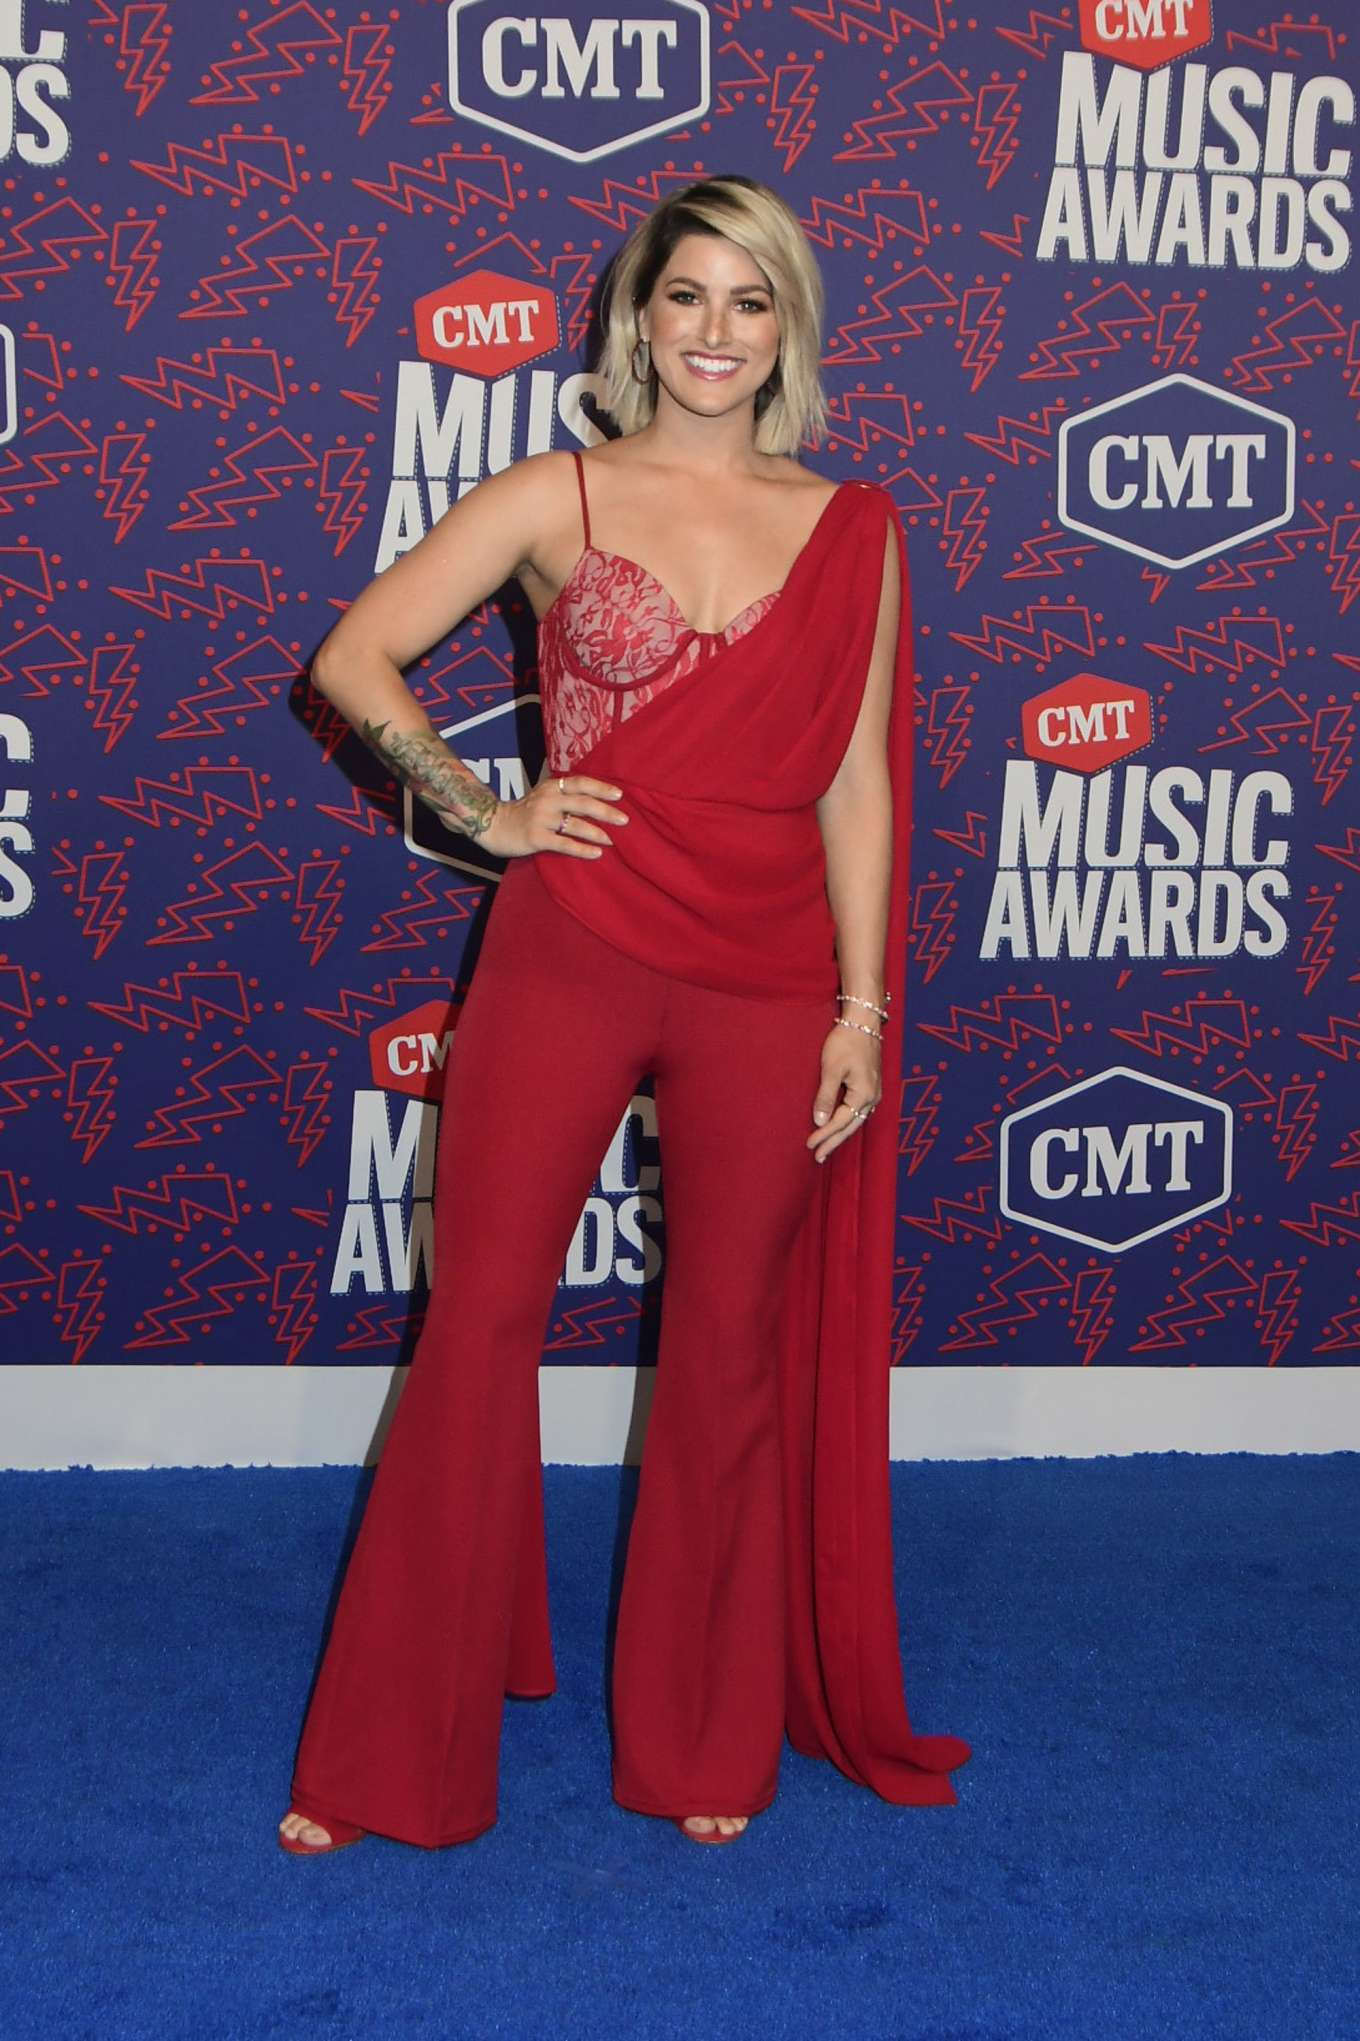 Cassadee Pope 2019 : Cassadee Pope: 2019 CMT Music Awards-25